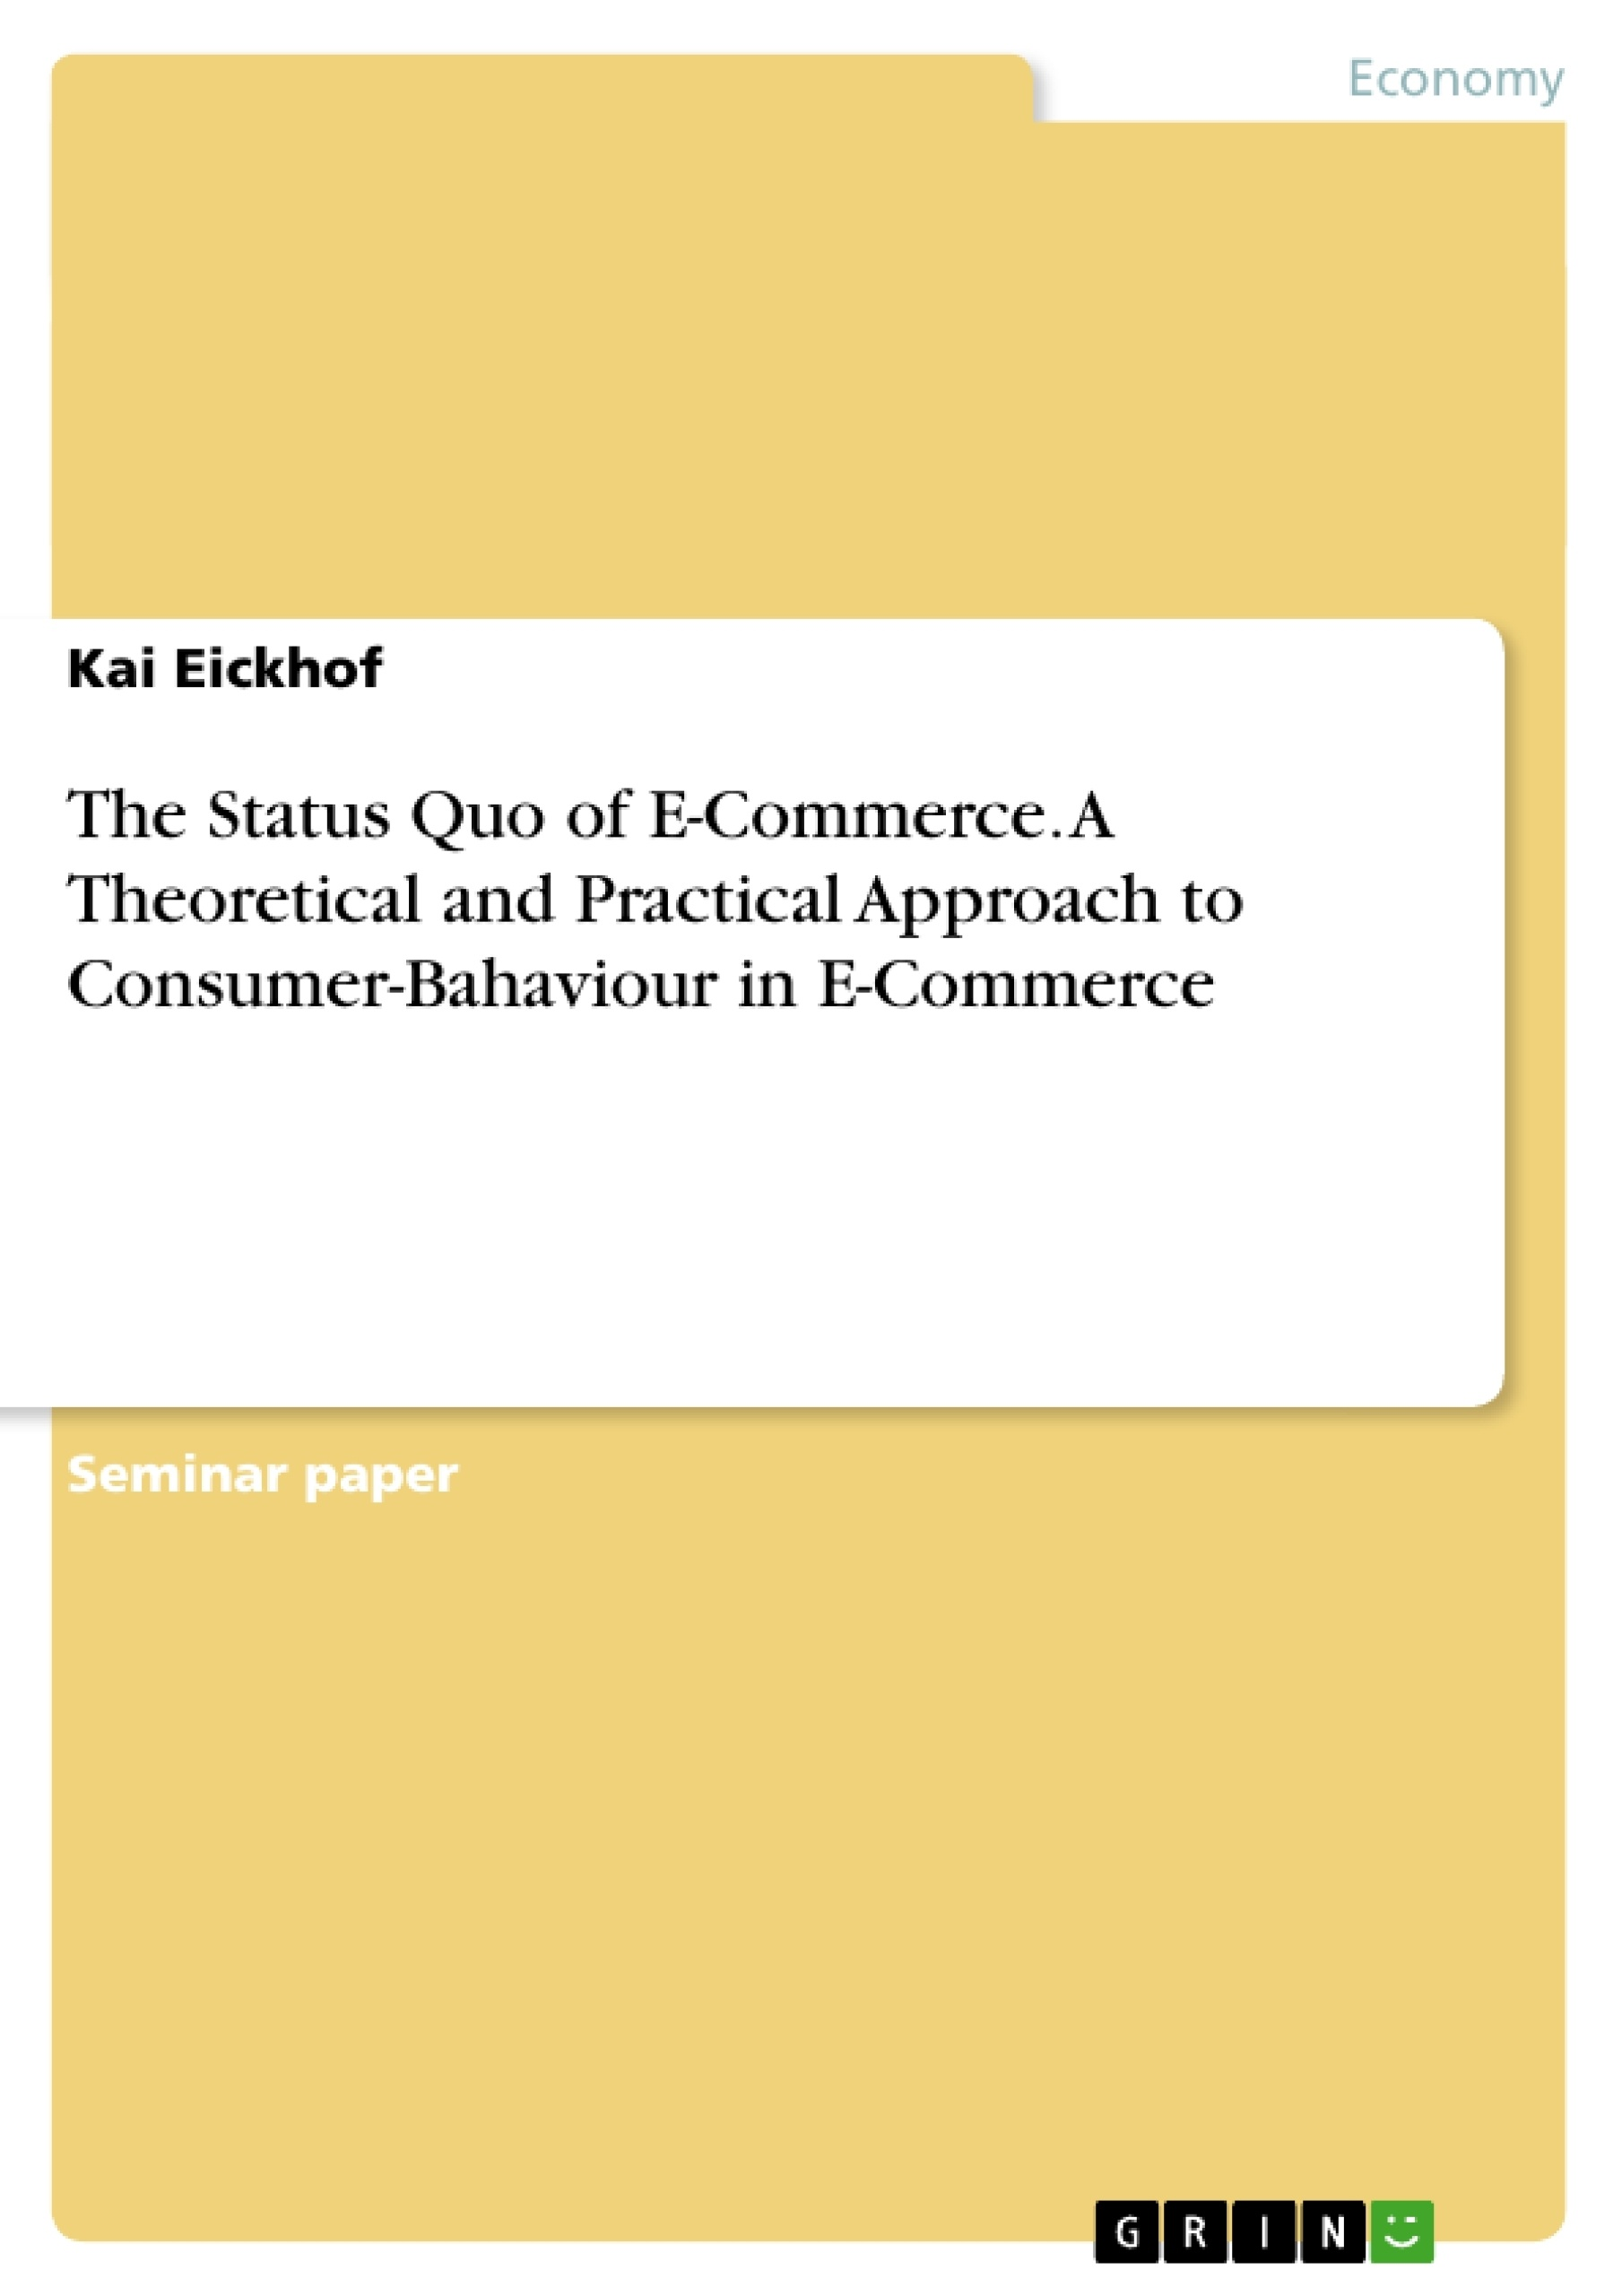 Title: The Status Quo of E-Commerce. A Theoretical and Practical Approach to Consumer-Bahaviour in E-Commerce